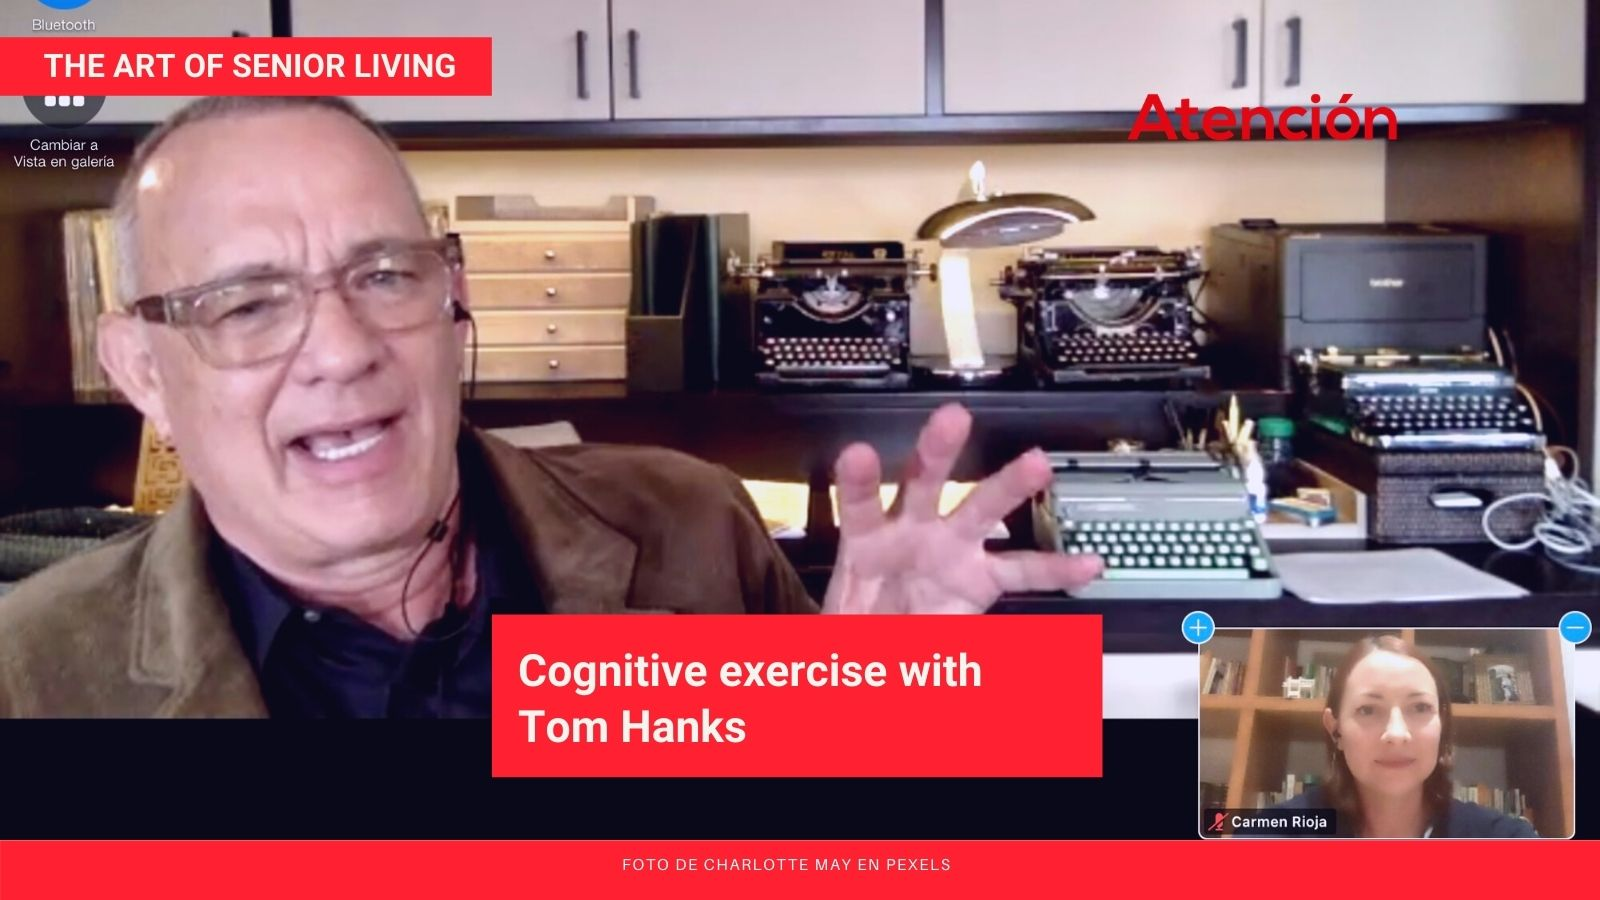 Cognitive-exercise-with-Tom-Hanks.jpg